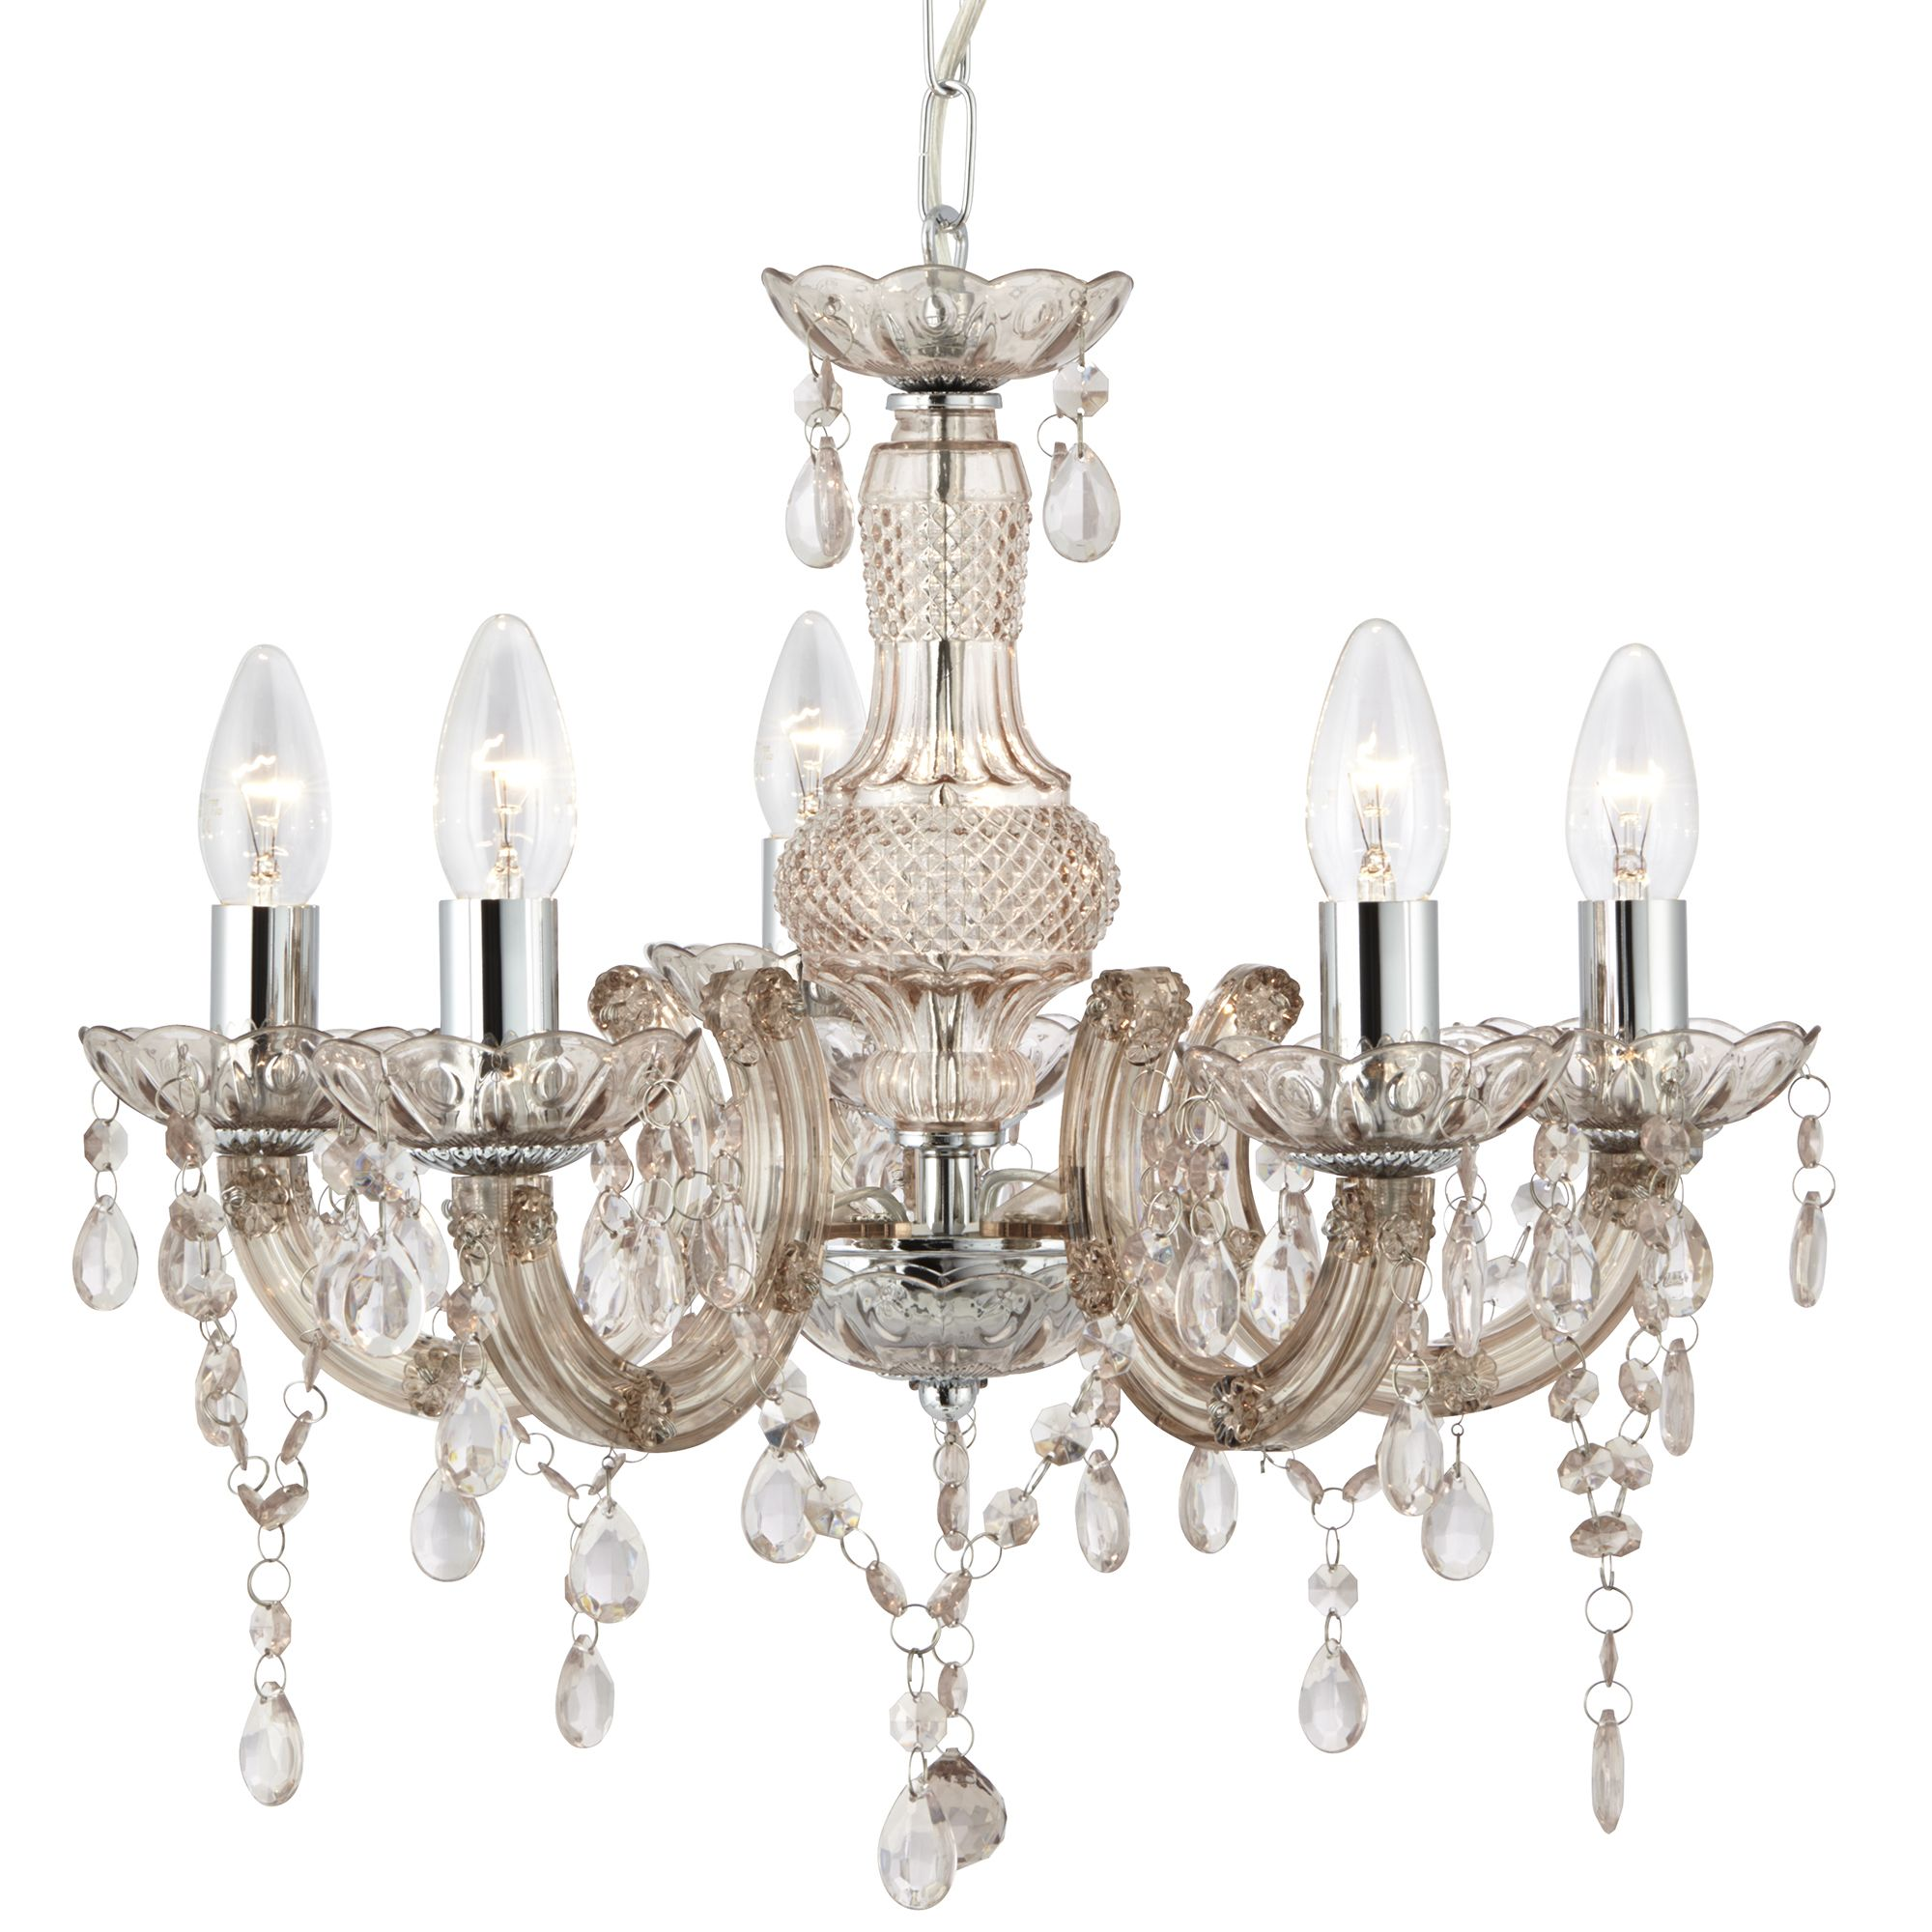 Searchlight 1455-5MI Chandelier 5x60W